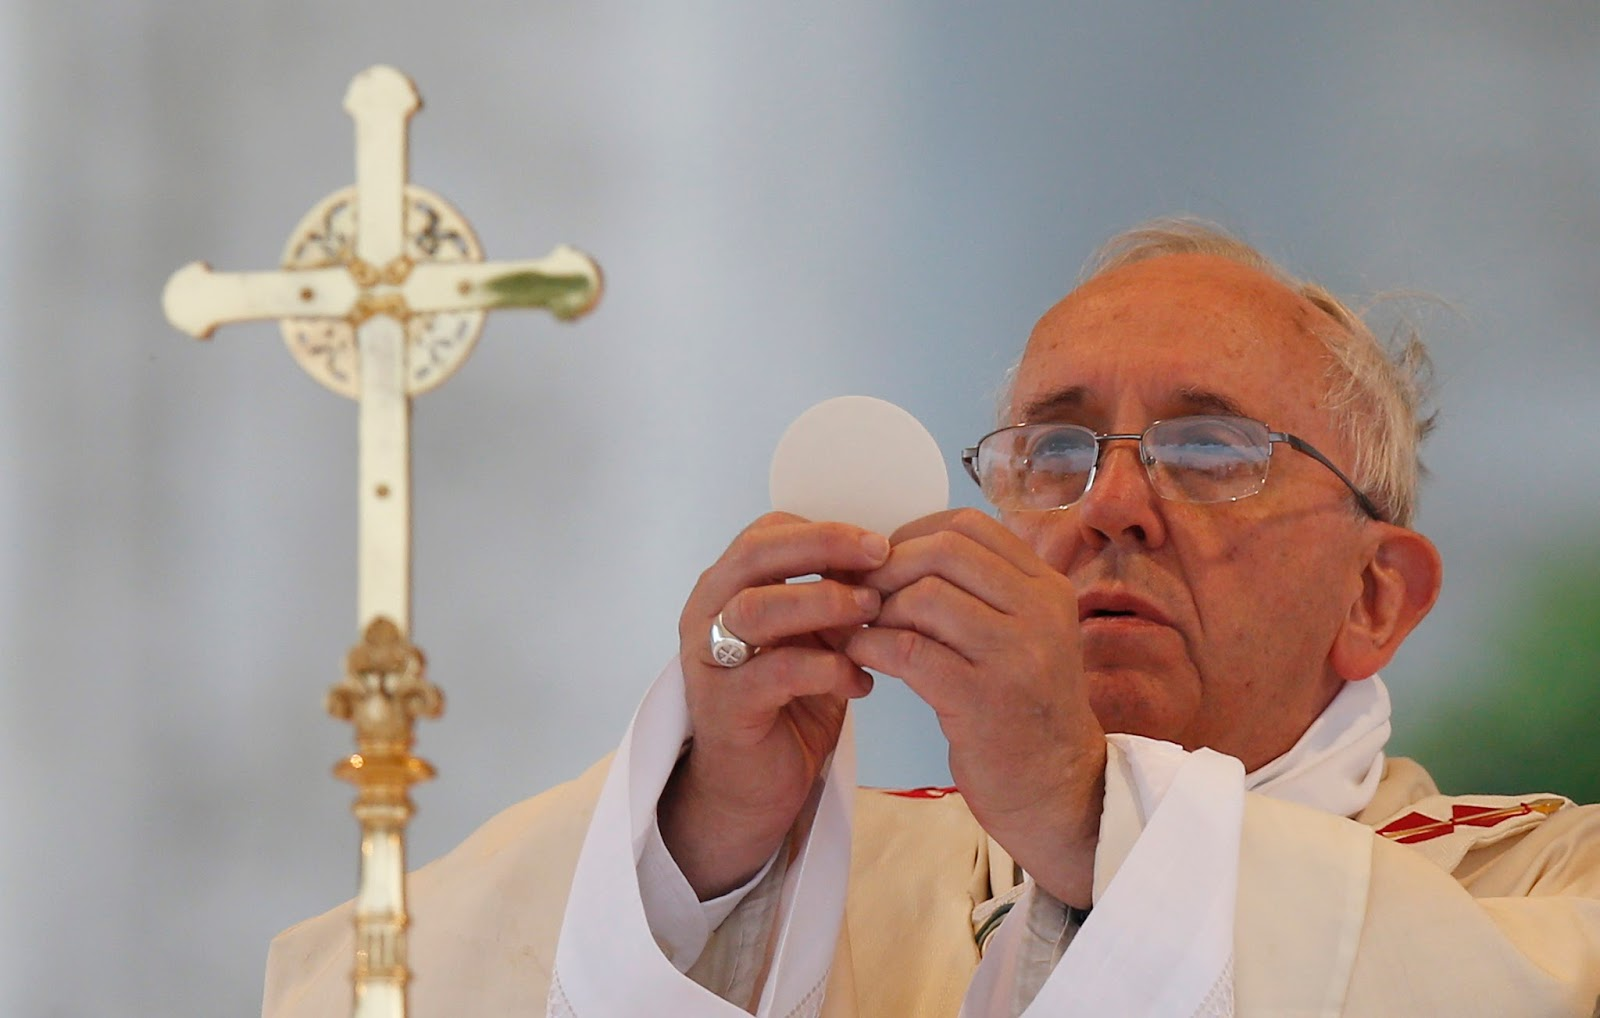 Fr Murchadh S Homilies Feast Of The Body And Blood Of Christ Corpus Christi Year A Gospel